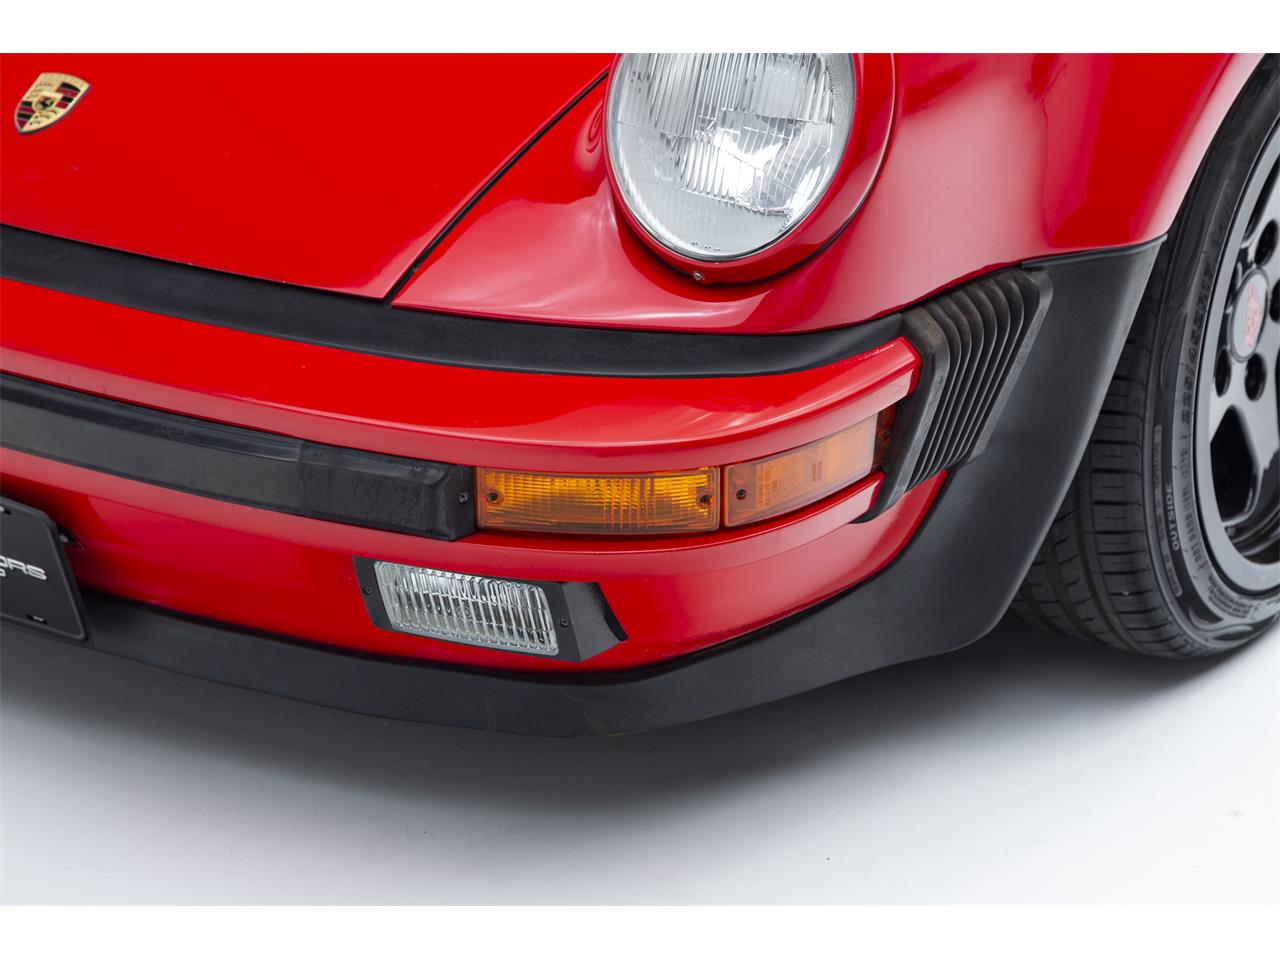 Large Picture of 1979 Porsche 911 Carrera located in Idaho - $44,995.00 Offered by a Private Seller - QIAZ